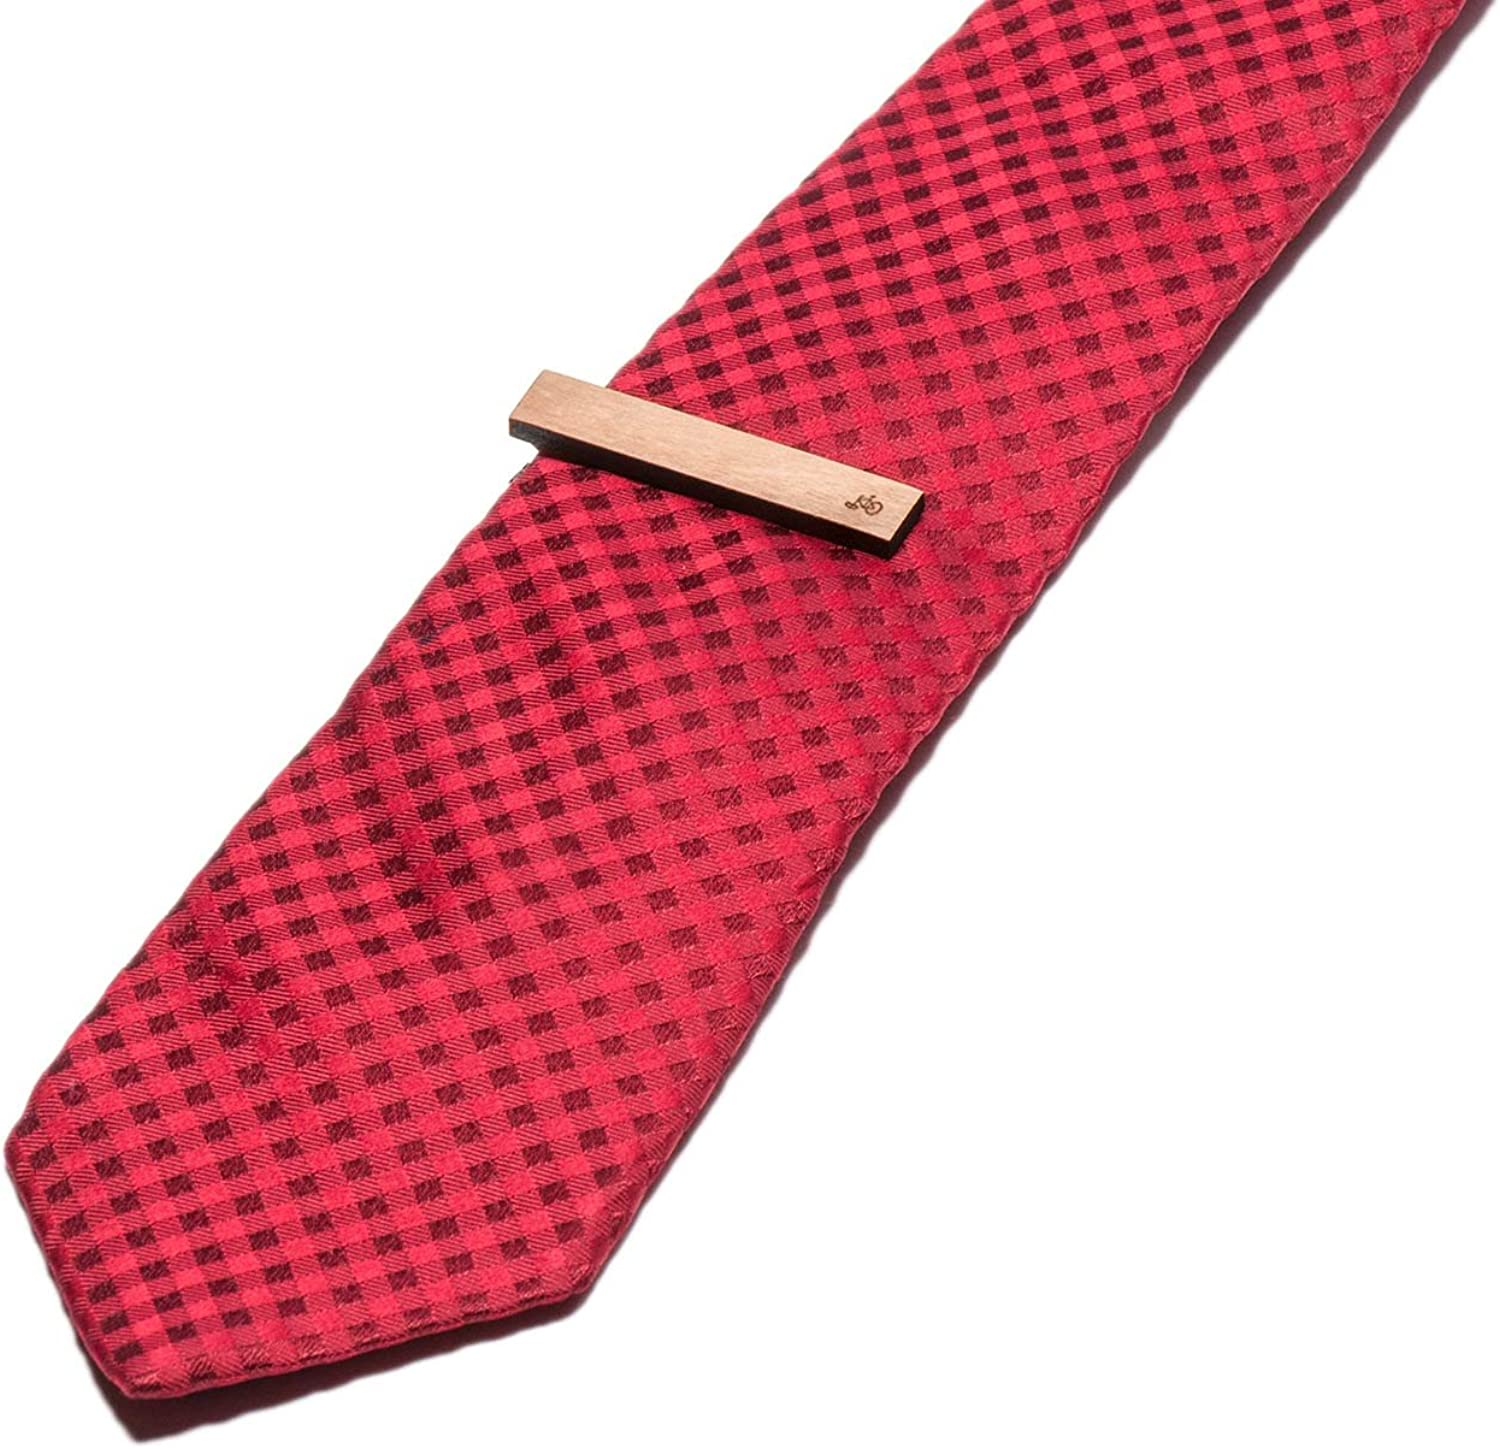 Wooden Accessories Company Wooden Tie Clips with Laser Engraved Broken Bicycle Design Cherry Wood Tie Bar Engraved in The USA